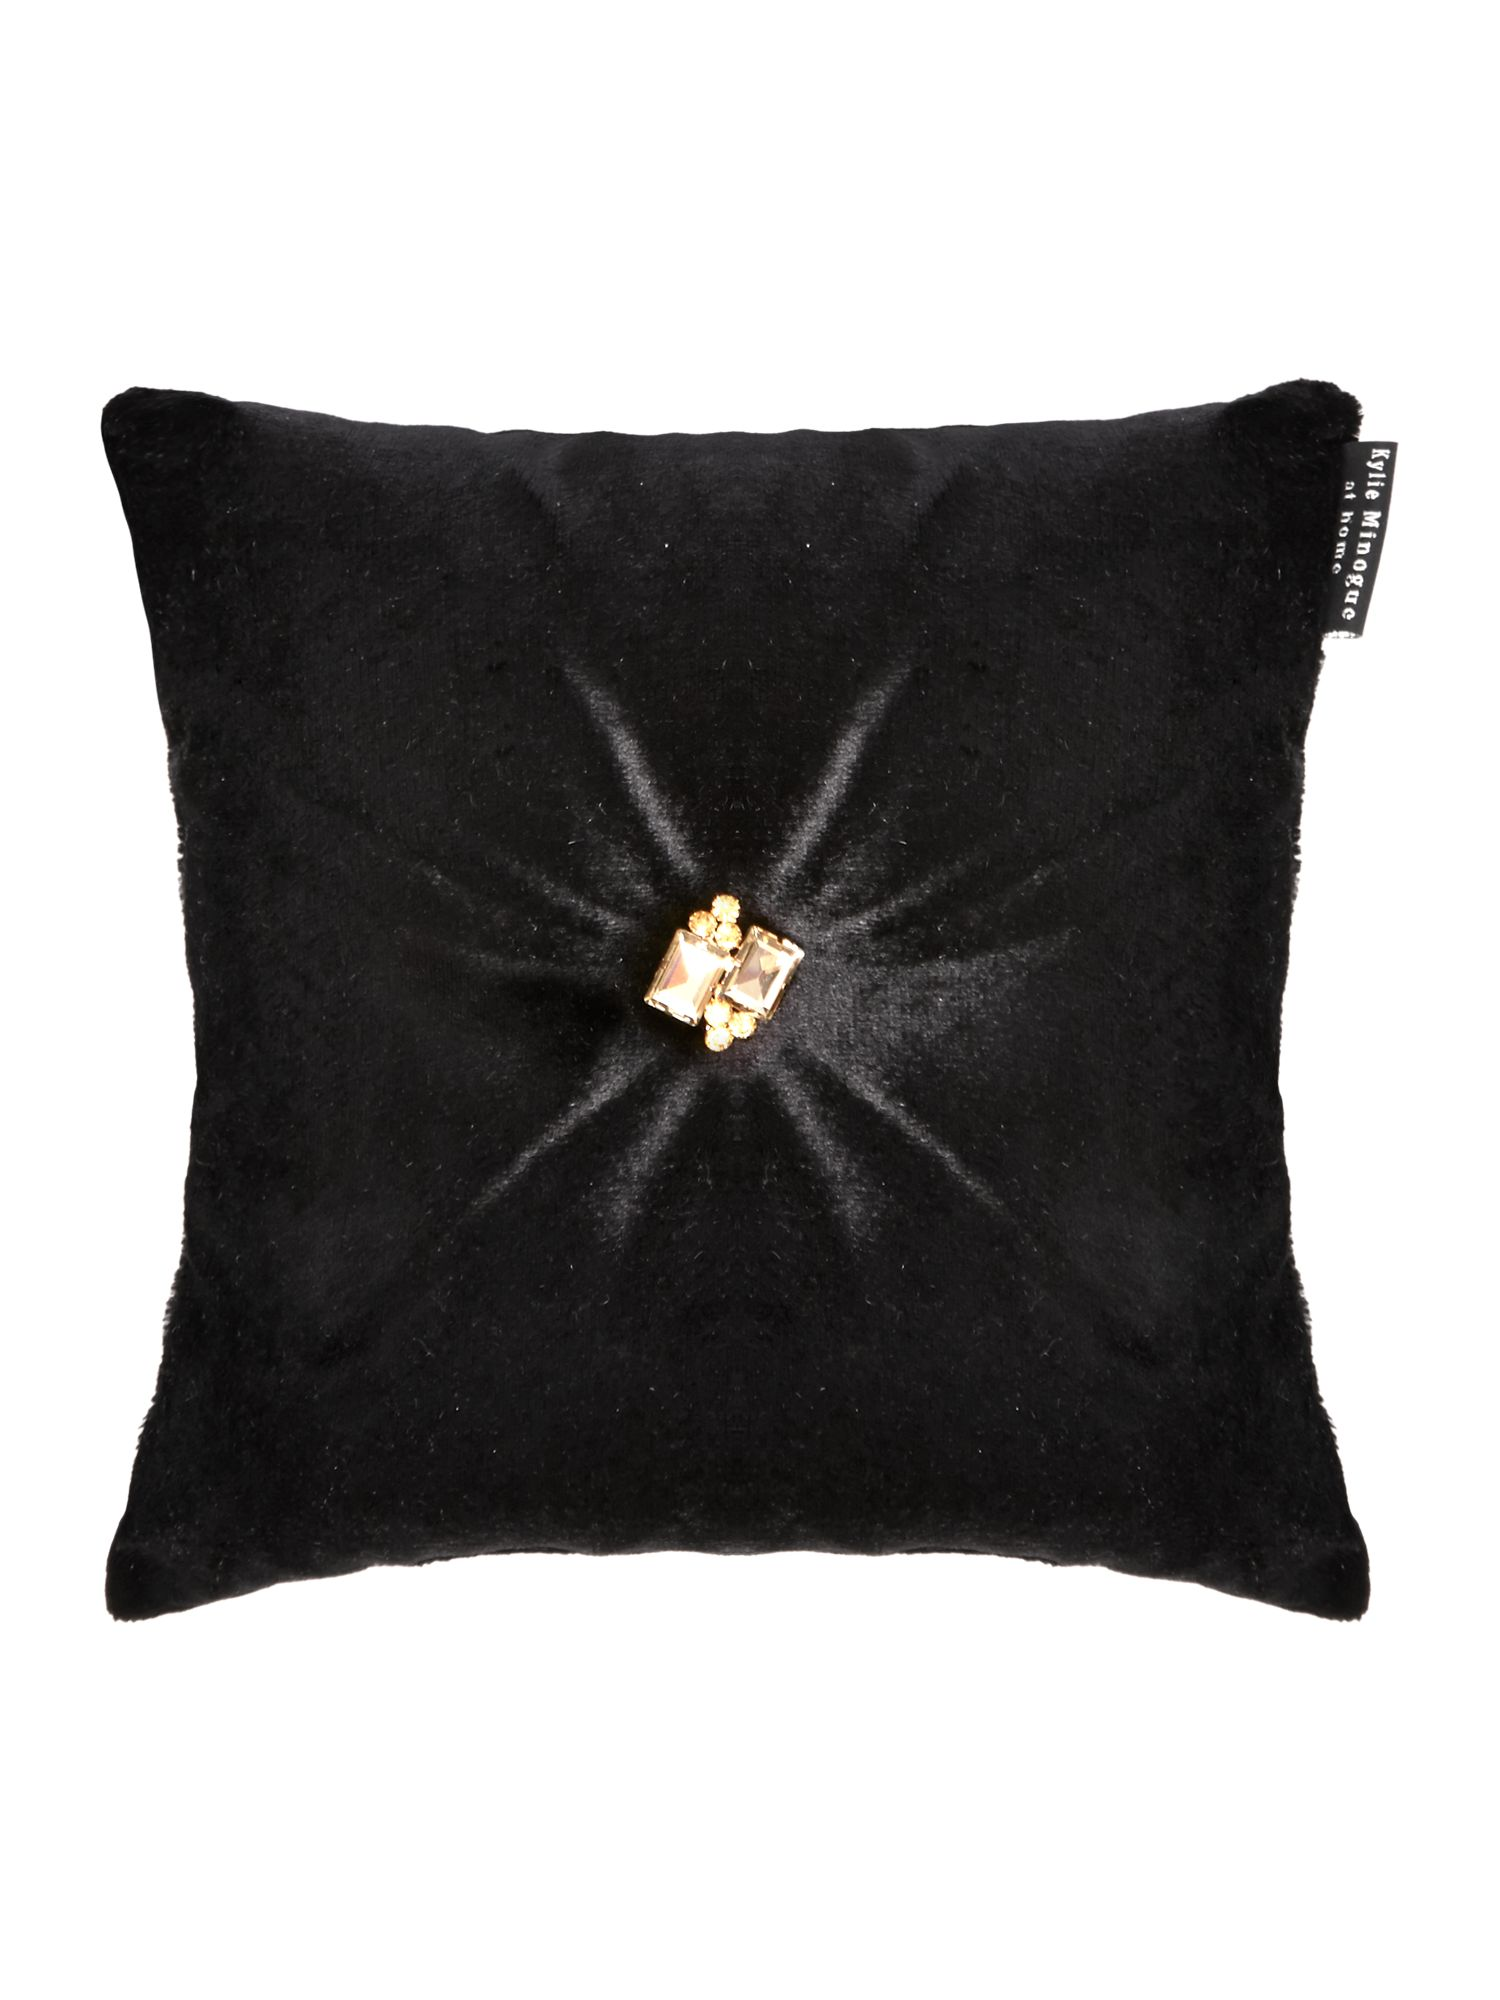 Gatsby cushion in black